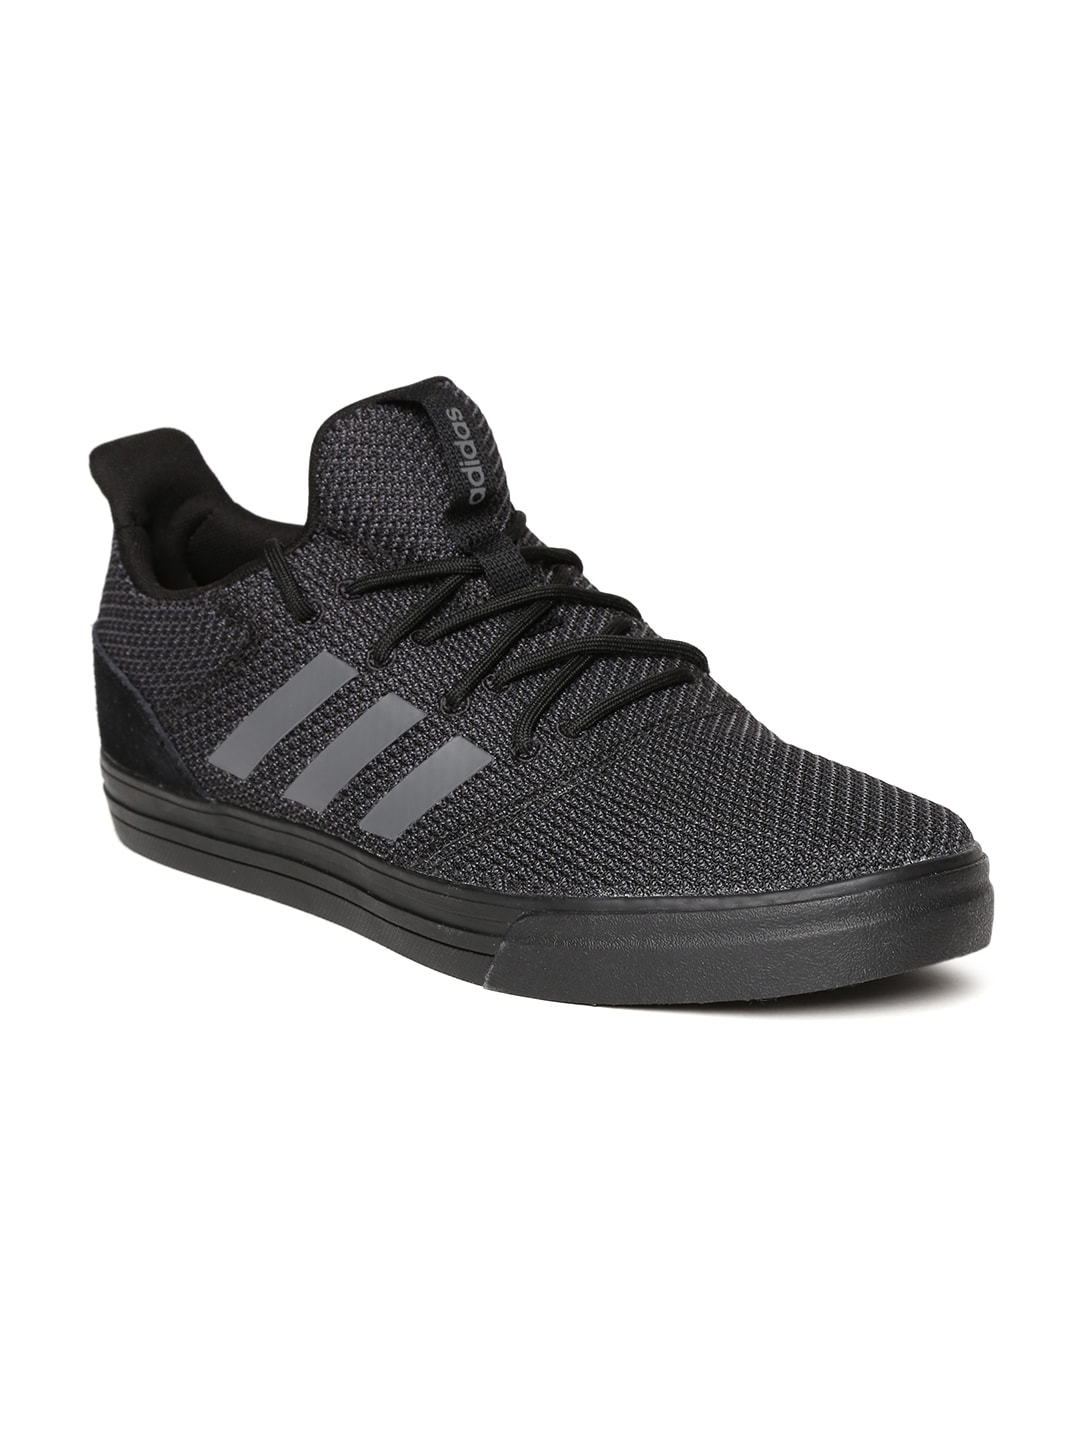 the latest 7d228 71c47 Mens Adidas Casual Shoes - Buy Adidas Casual Shoes for Men Online in India